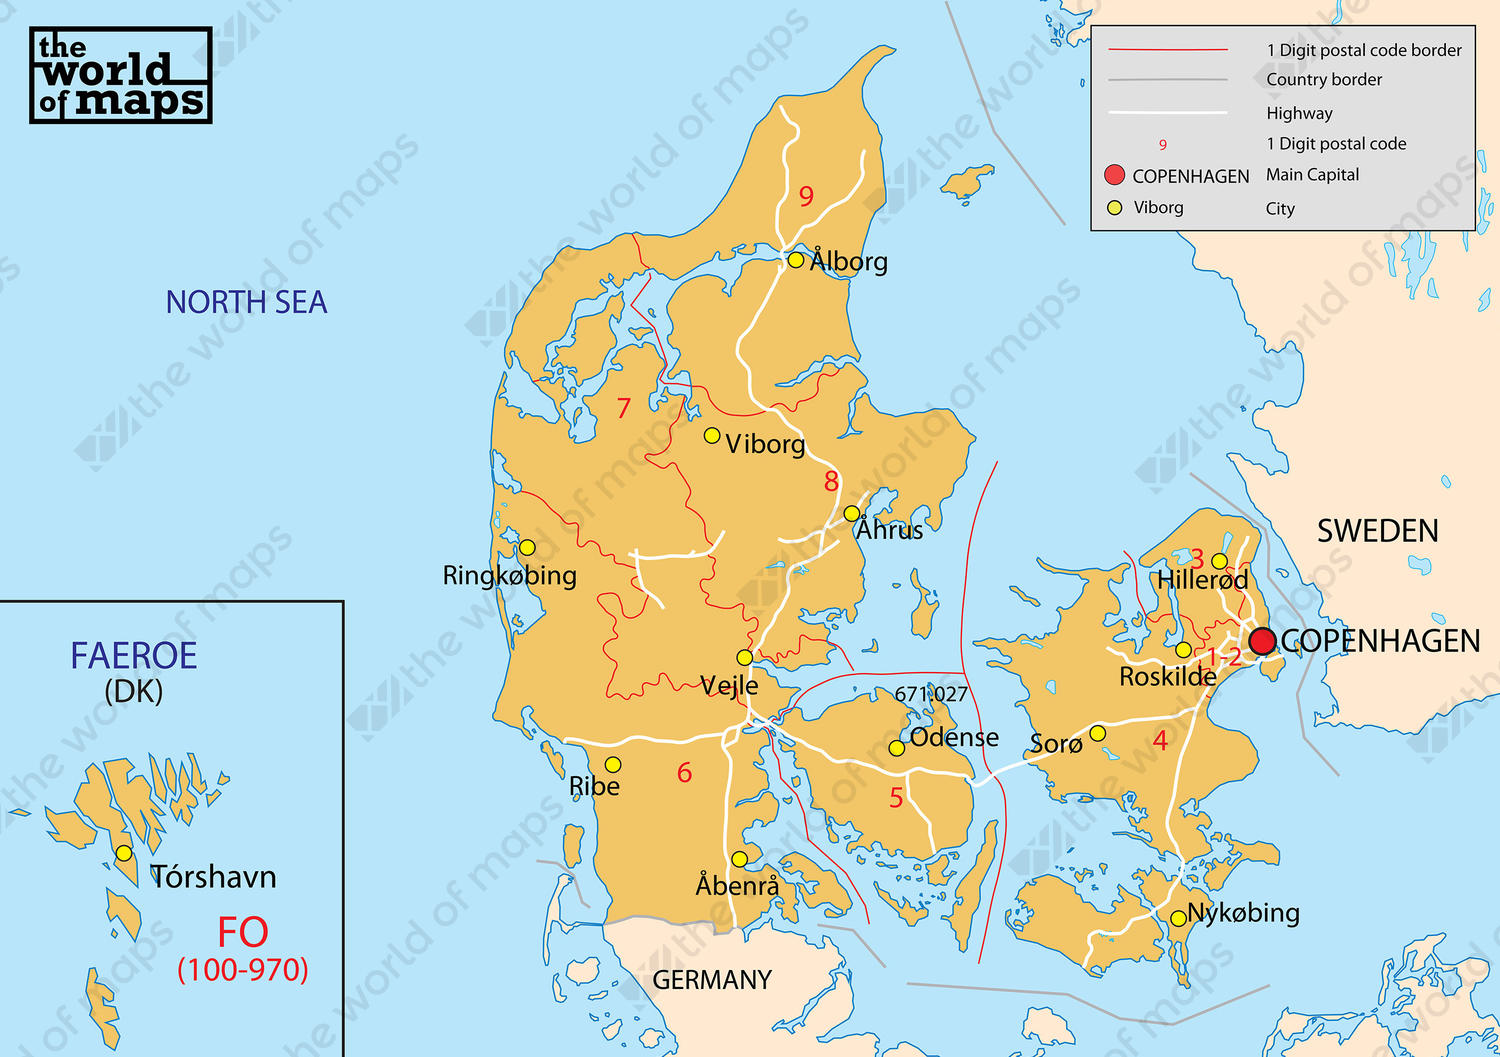 Digital postcode map Denmark 1digit 77 The World of Mapscom